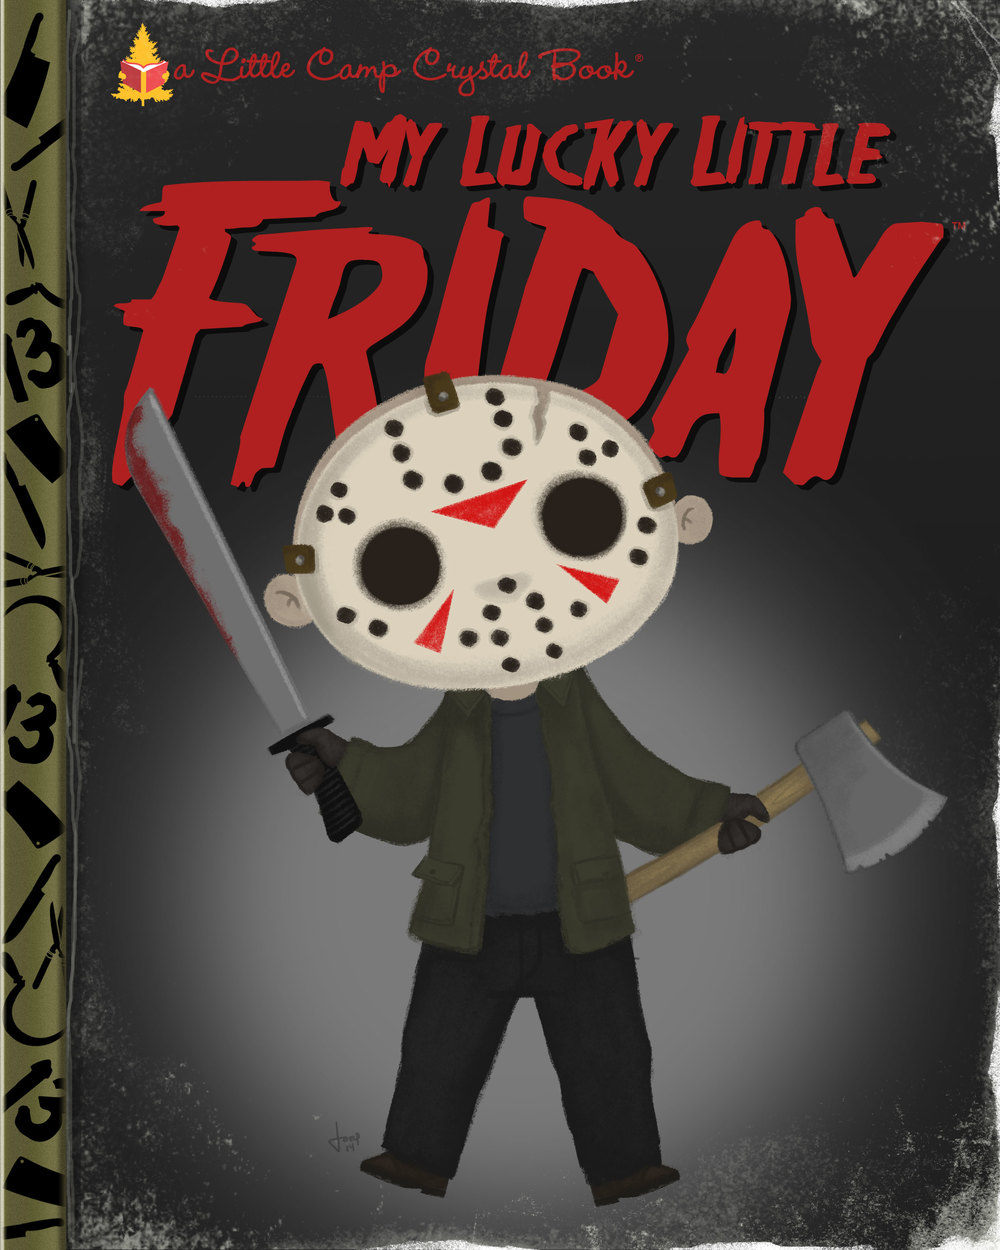 FridayThe13th-30.jpg